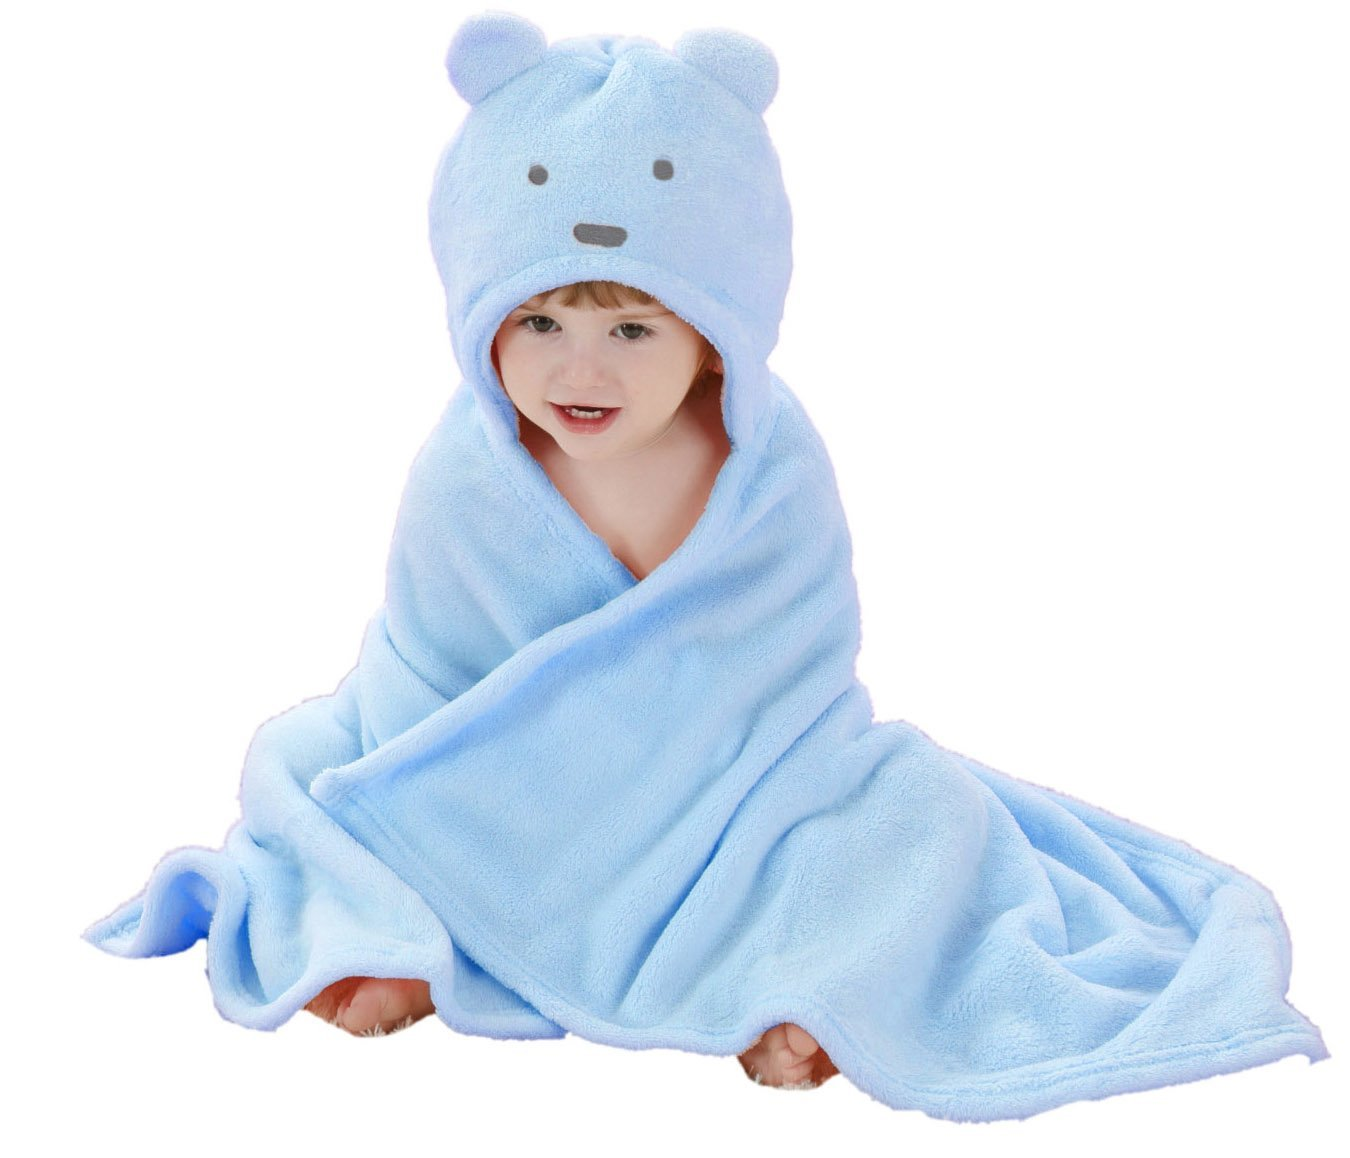 Extra Soft Animal Face Hooded Baby Towel for Infant Toddler Newborn and Kids at Bath Pool and Beach